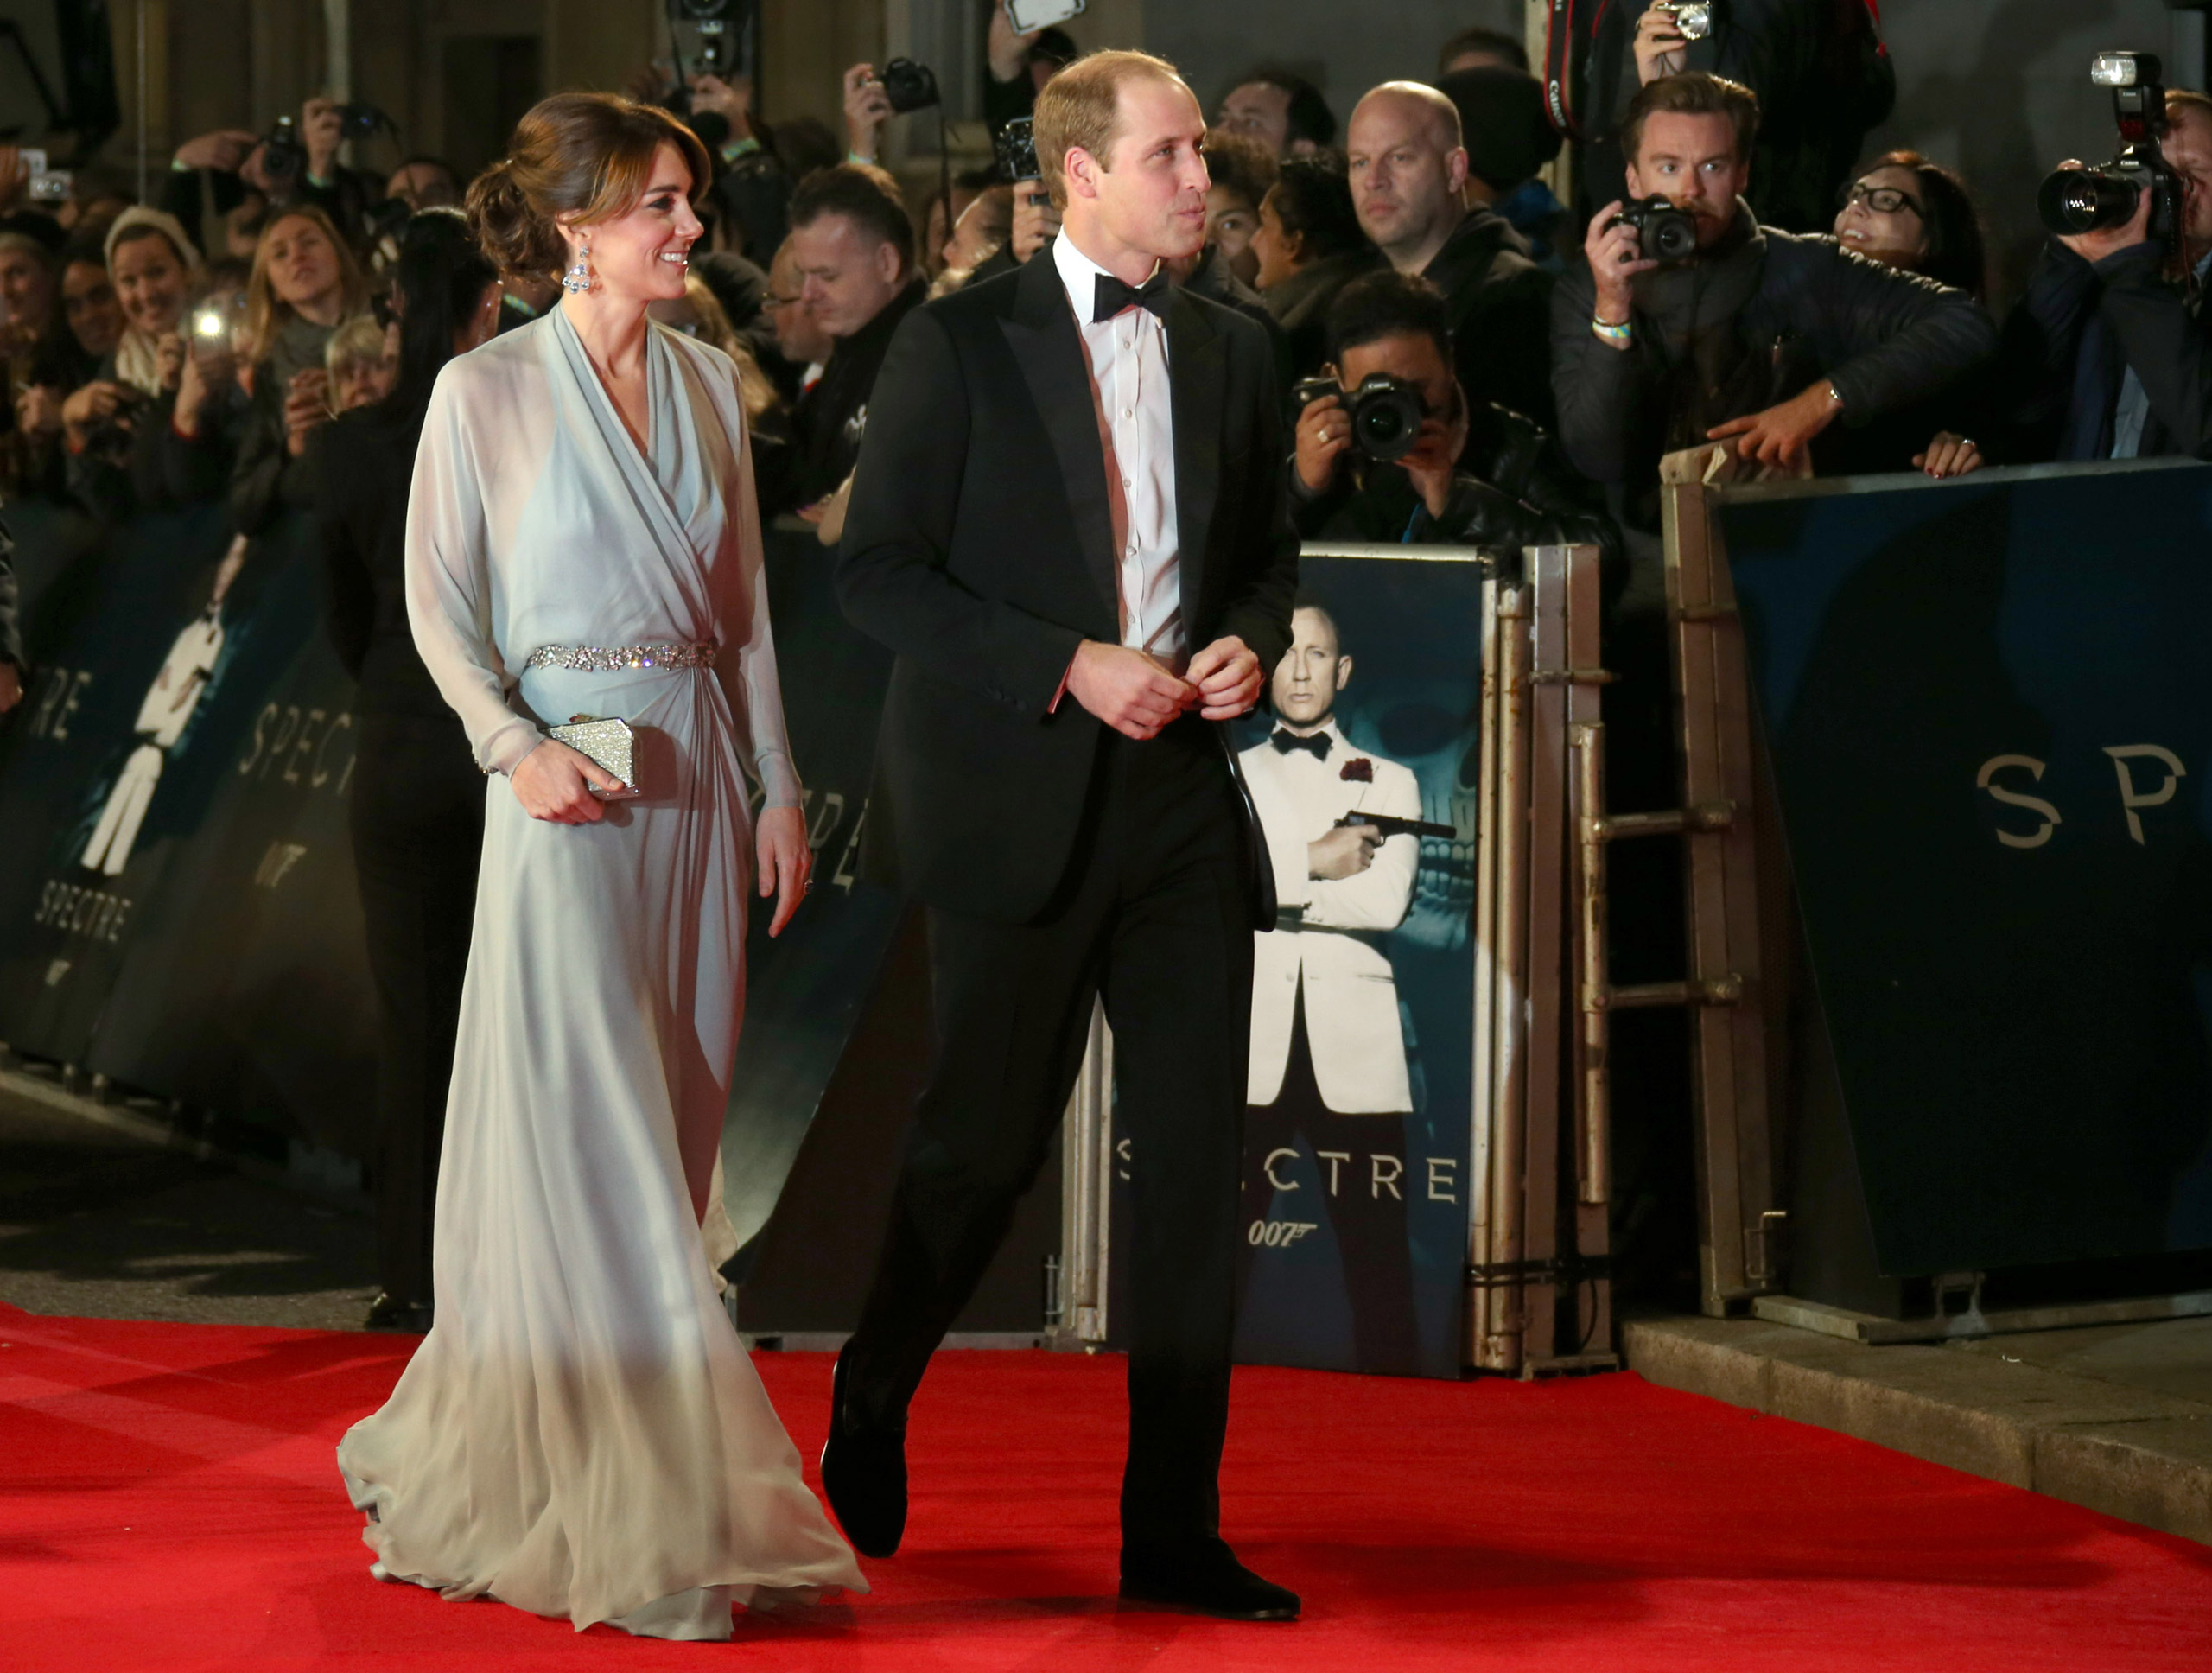 "Catherine, the Duchess of Cambridge, and Prince William, the Duke of Cambridge, arrive for the World Premiere of ""Spectre"" at the Royal Albert Hall in London, on Oct. 26, 2015."